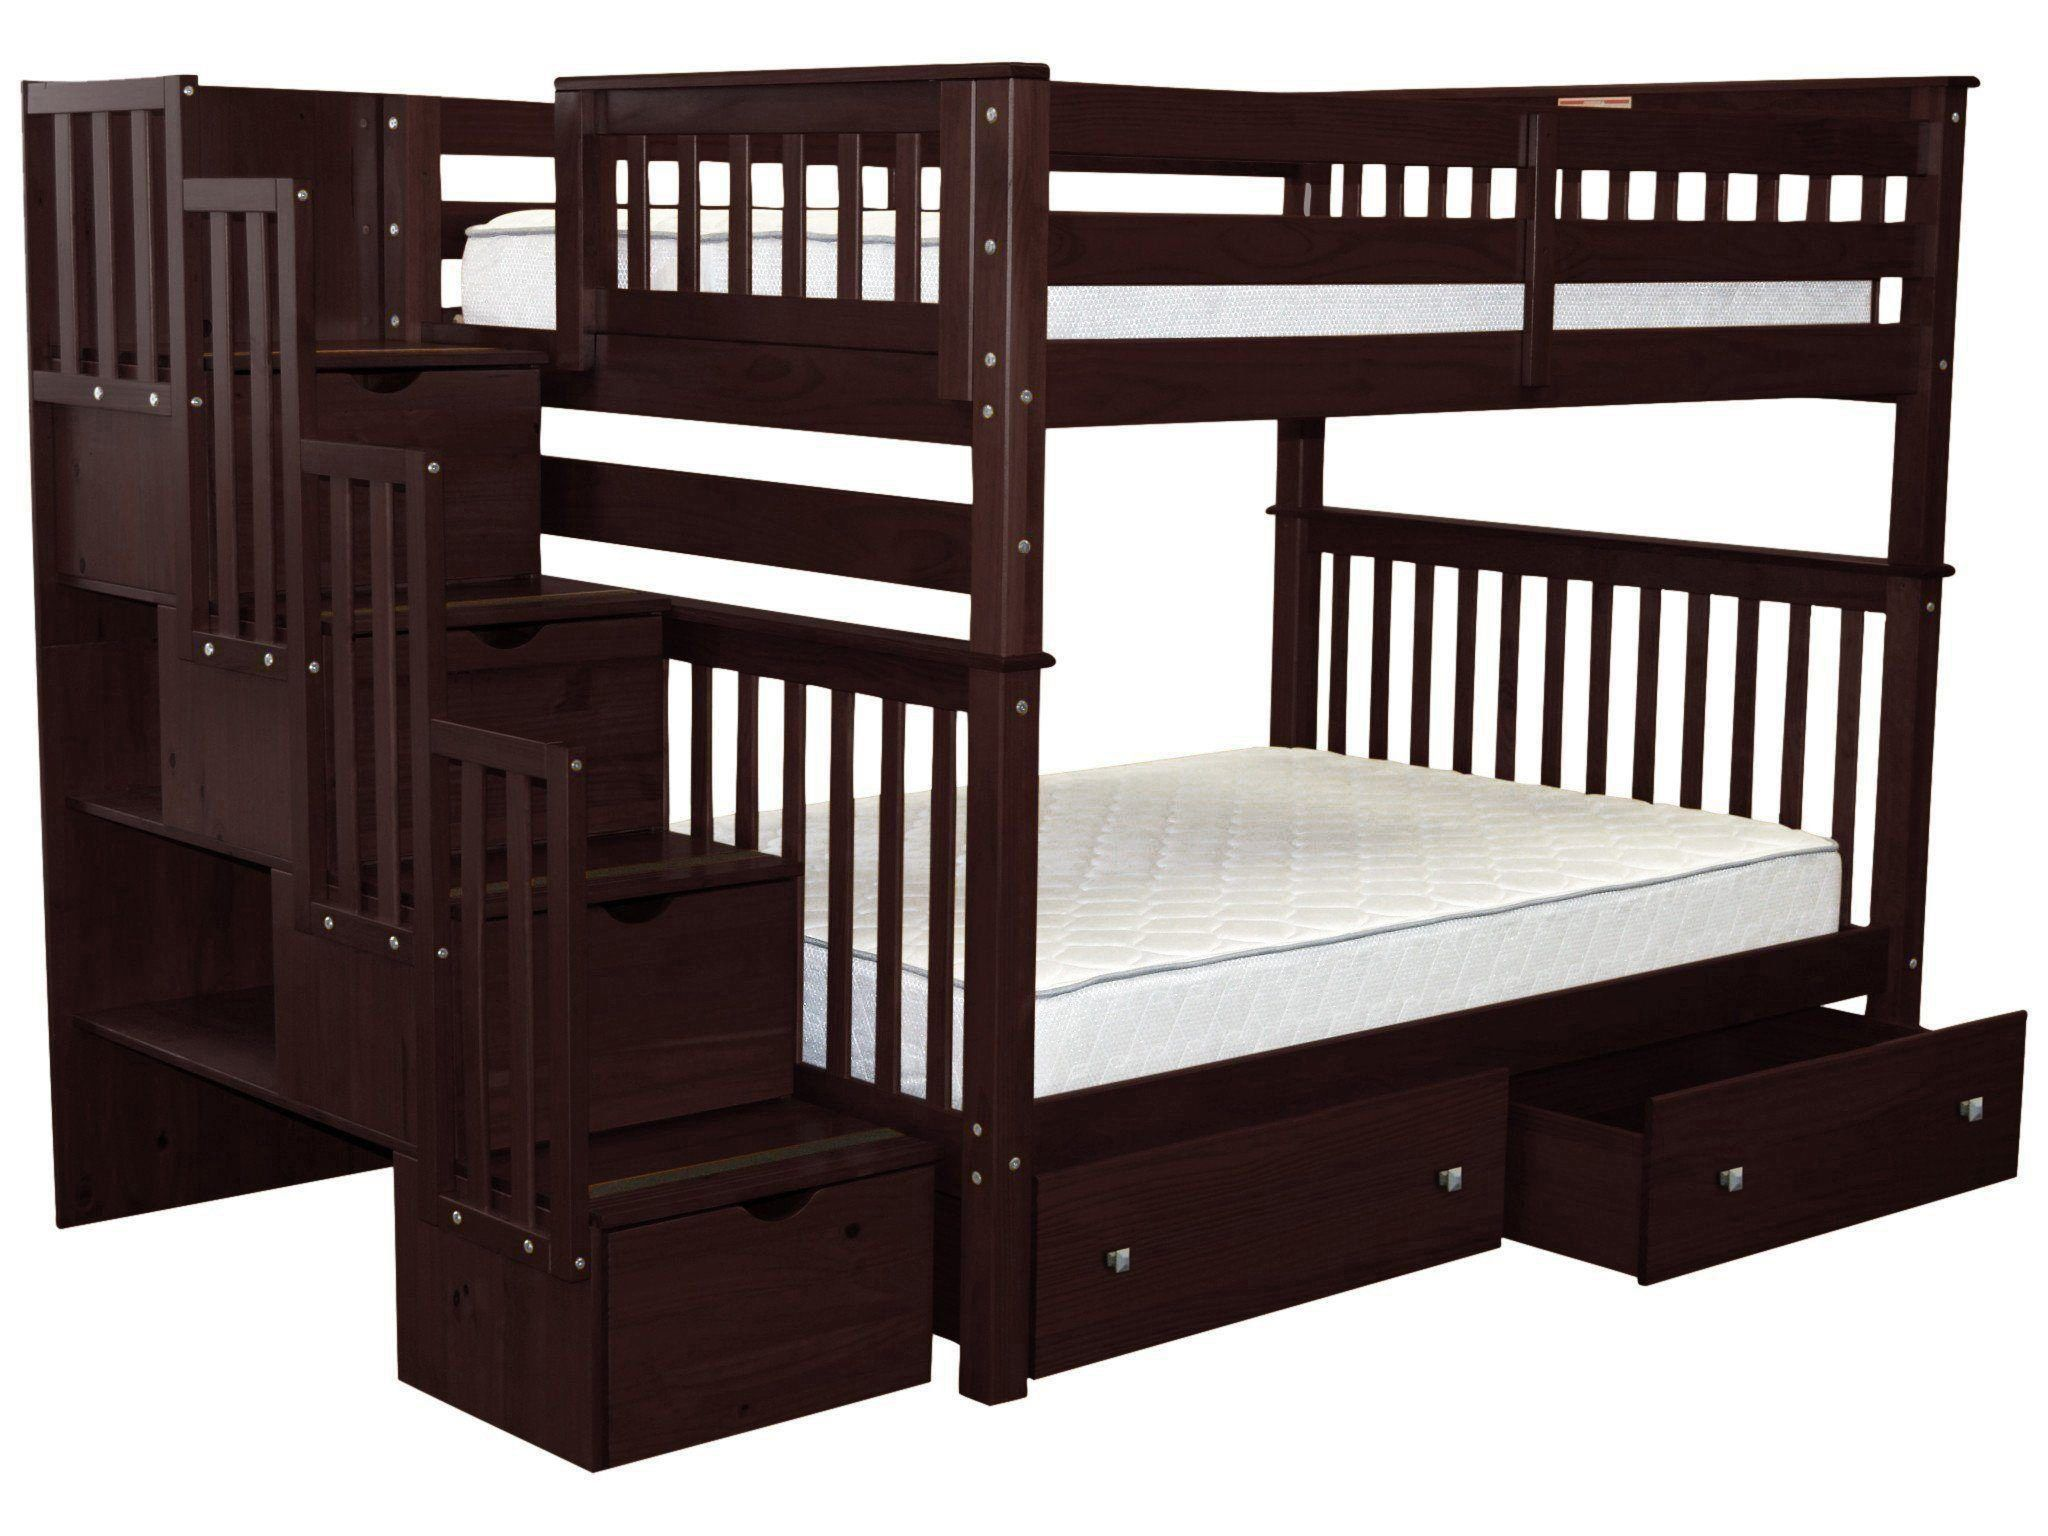 Bedz King Stairway Bunk Beds Full Over Full With 4 Drawers In The Steps And 2 Under Bed Drawers Cappuccino Walmart Com Walmart Com